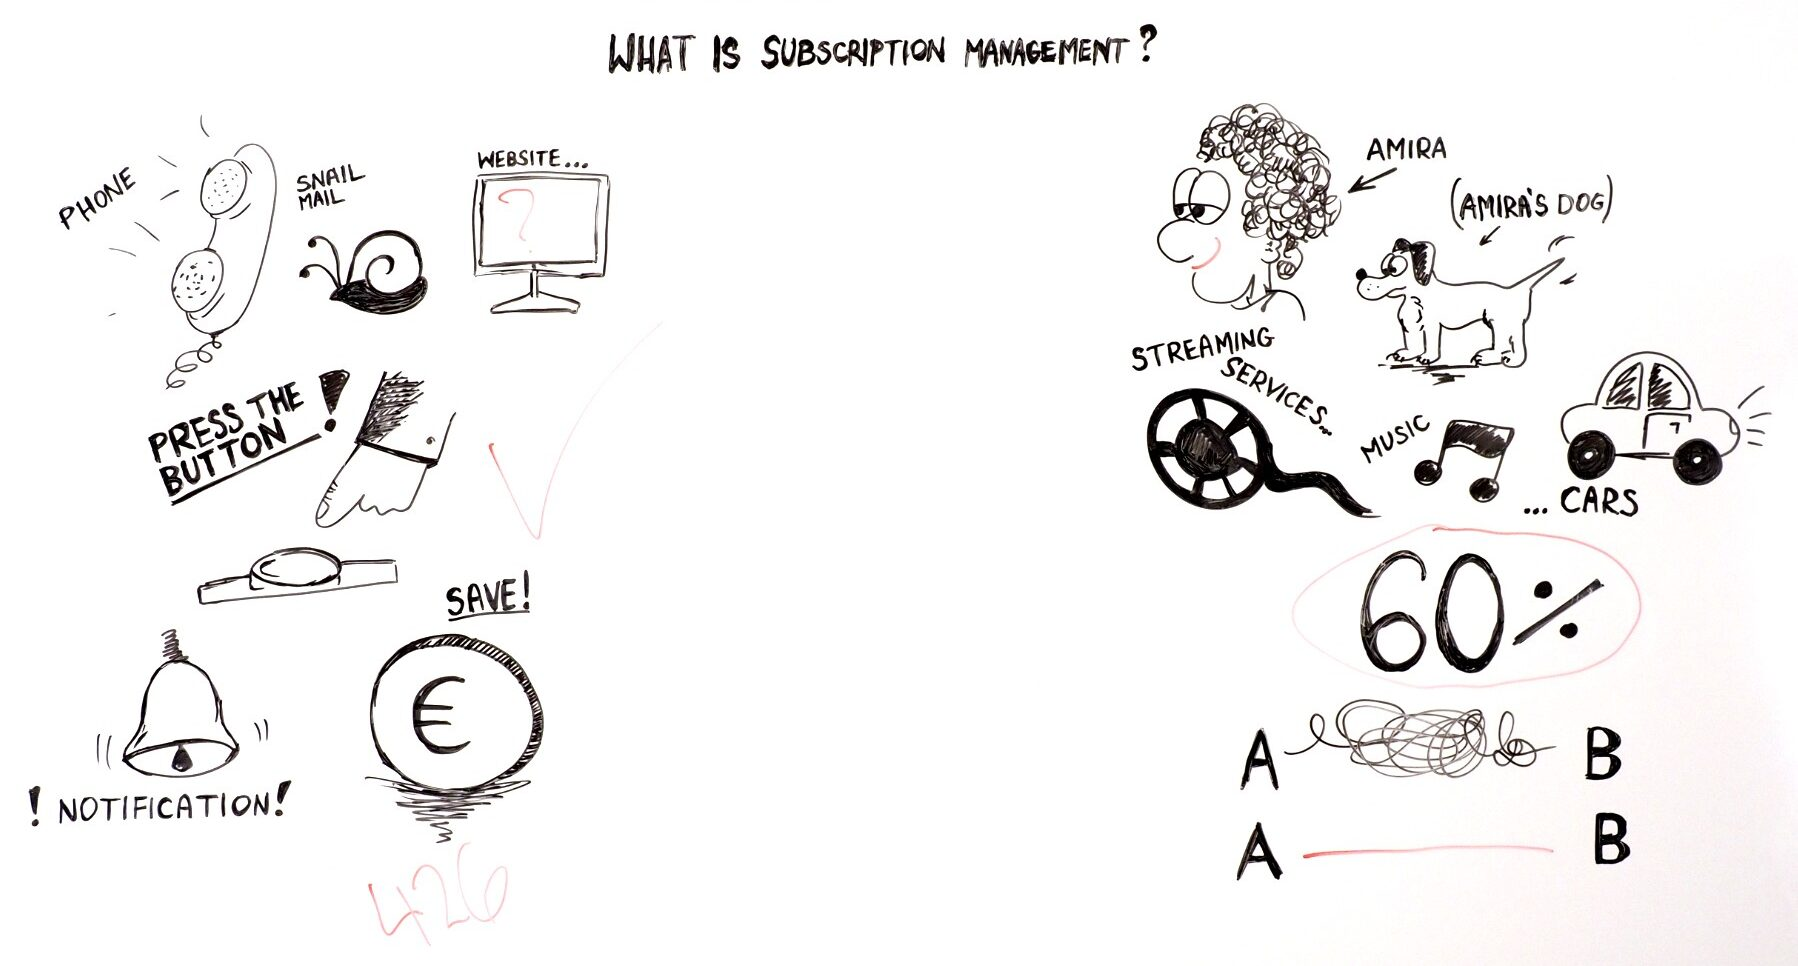 what is a subscription management